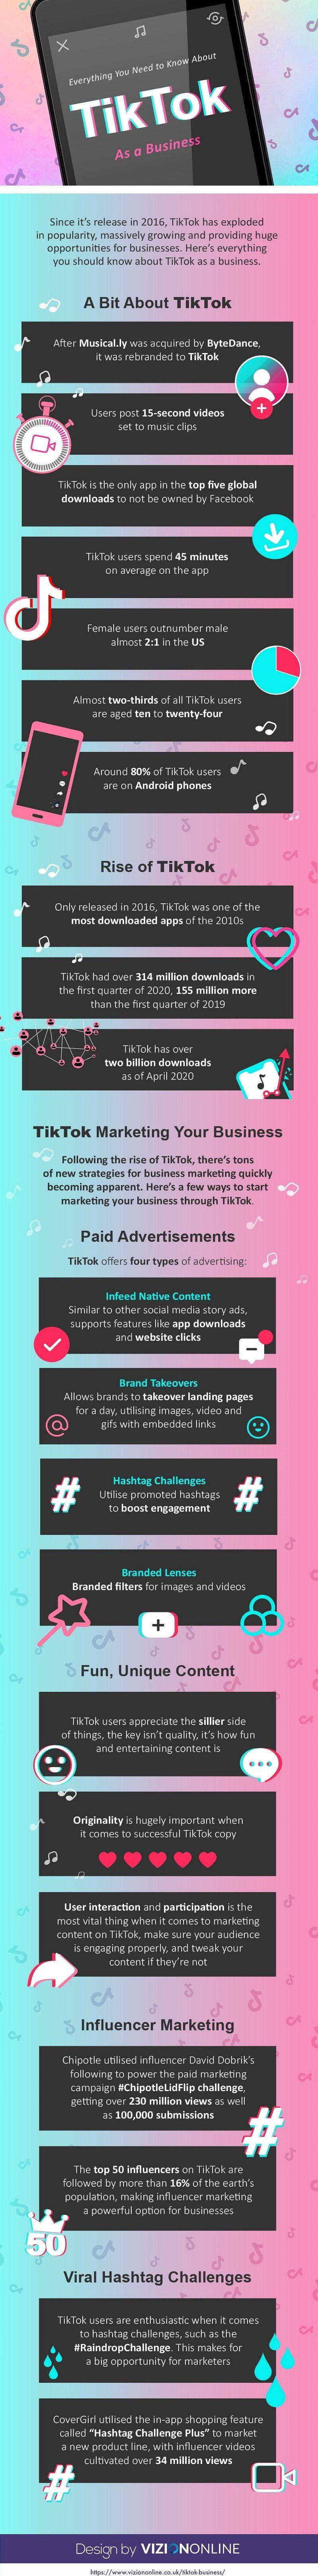 Everything You Need To Know About Tiktok Infographic Social Media Today Social Media Infographic Business Infographic Infographic Marketing